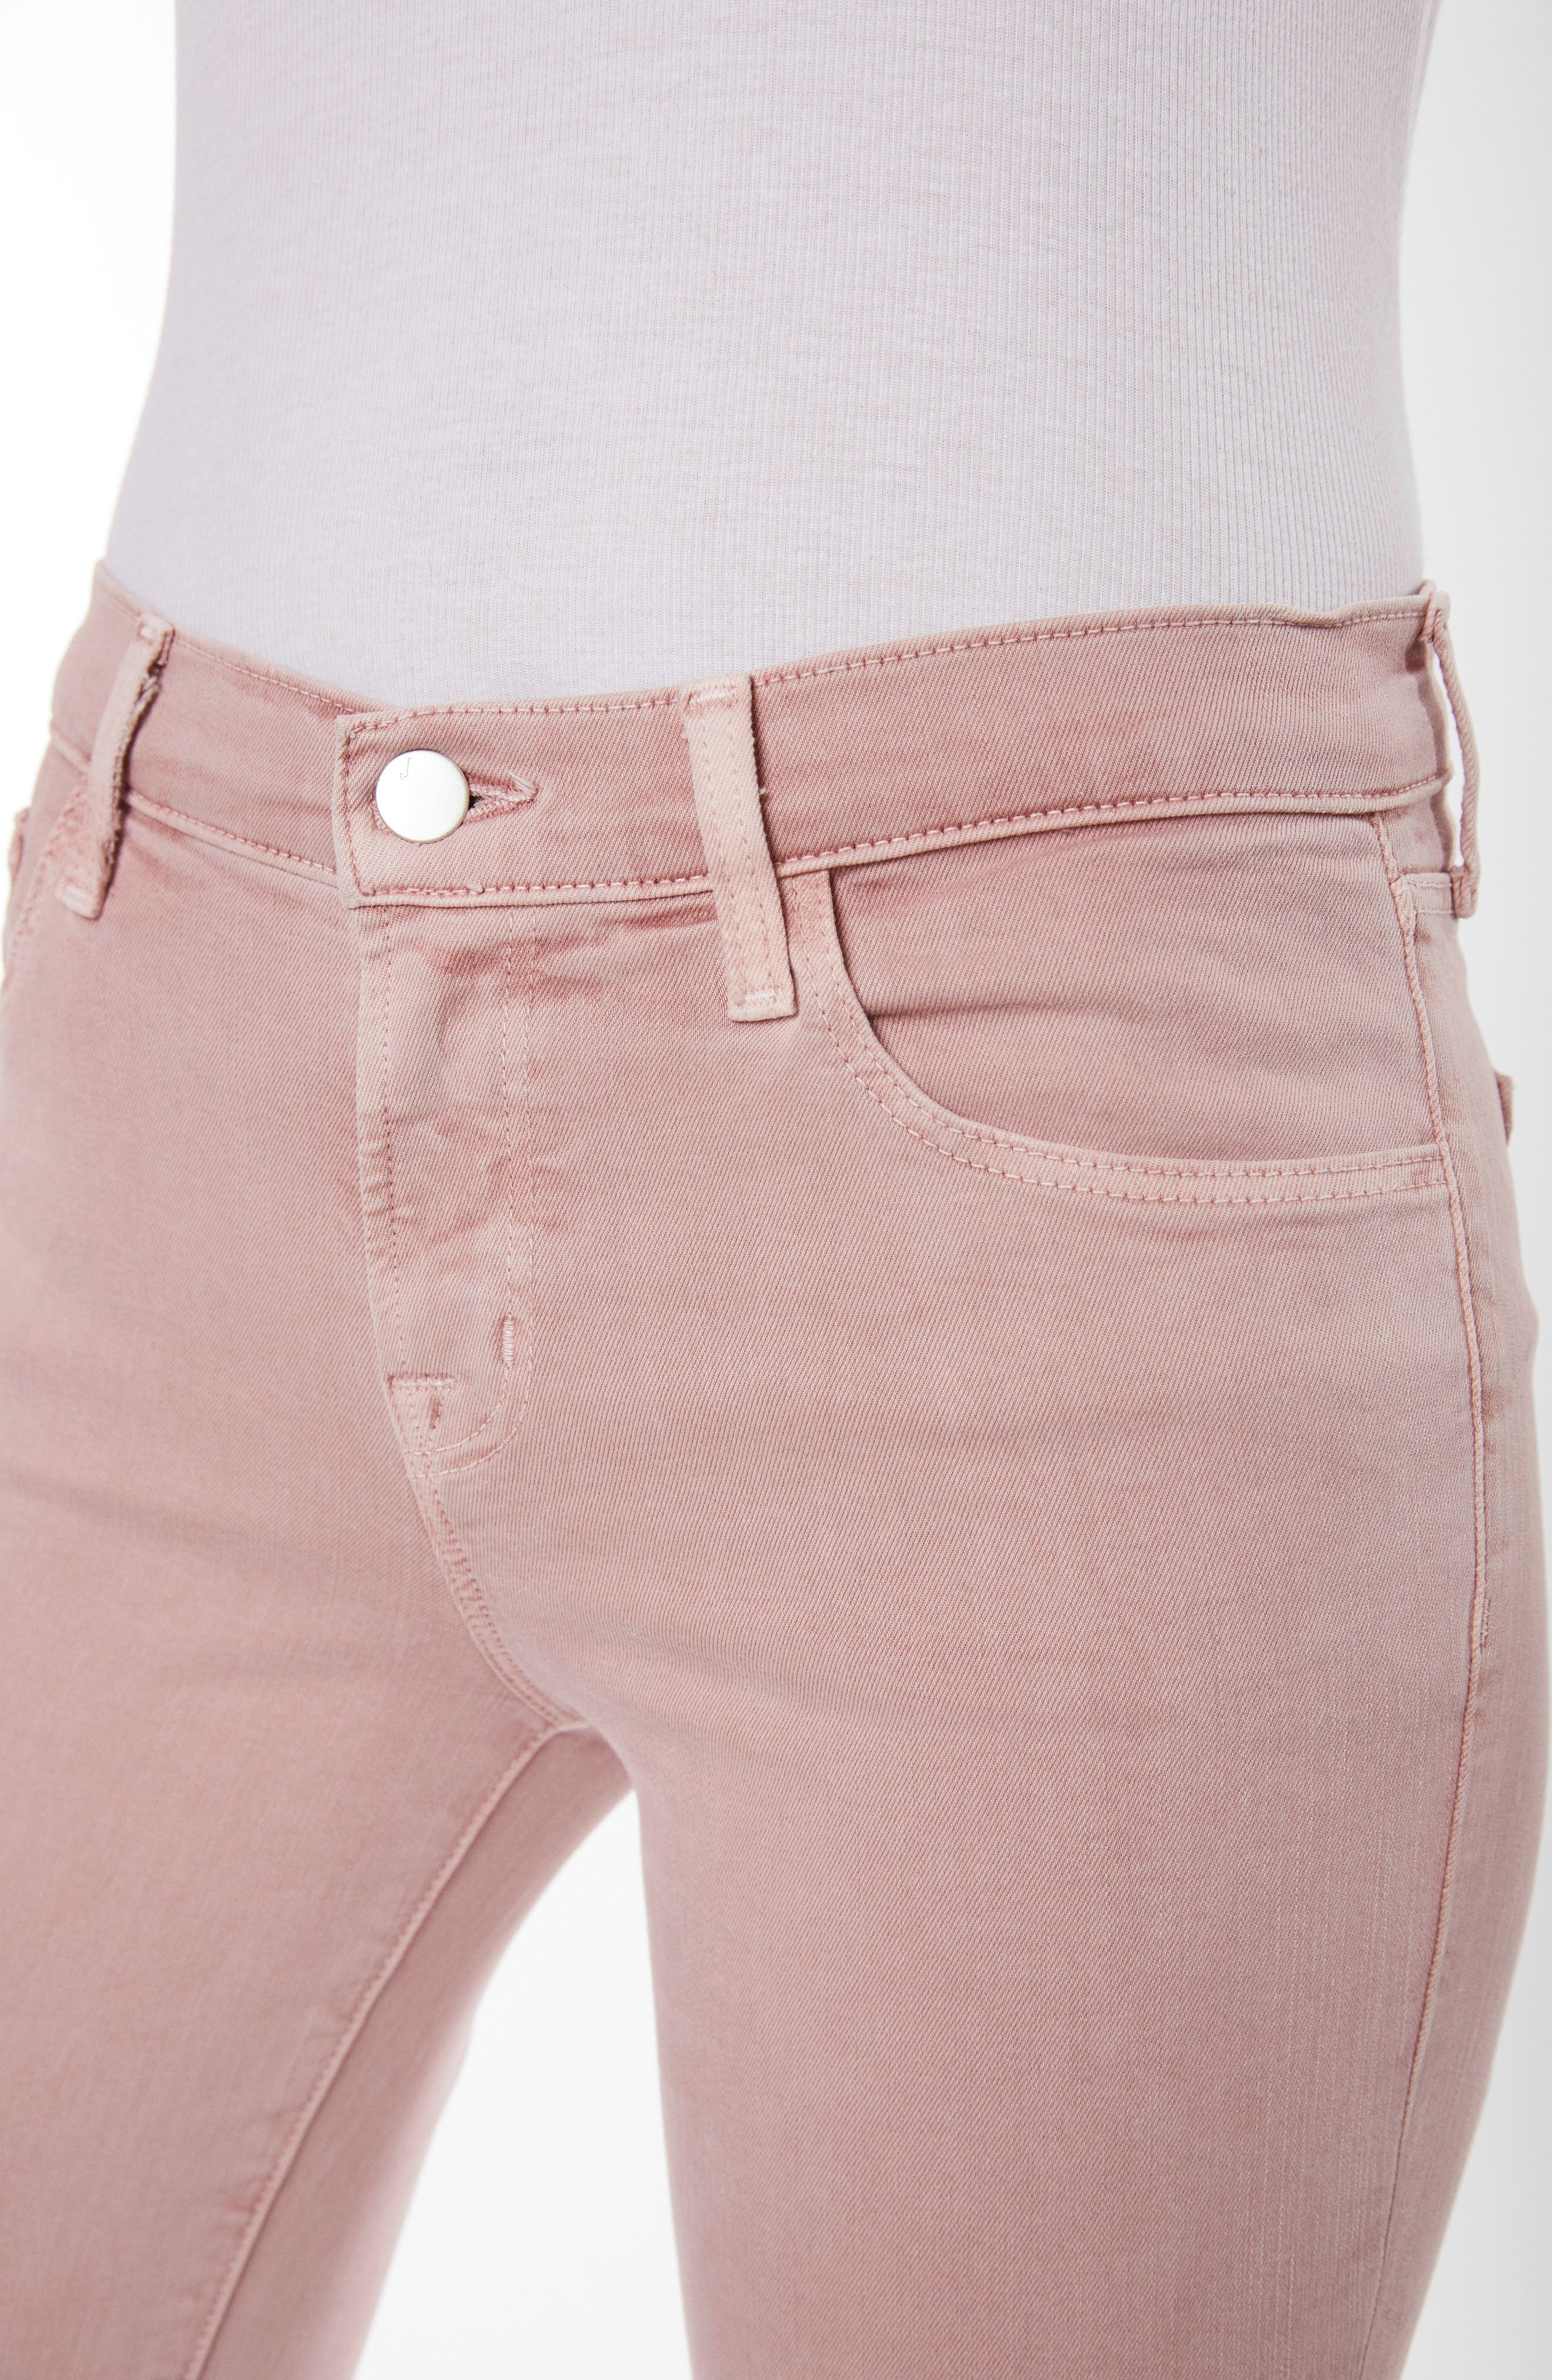 835 Capri Skinny Jeans,                             Alternate thumbnail 5, color,